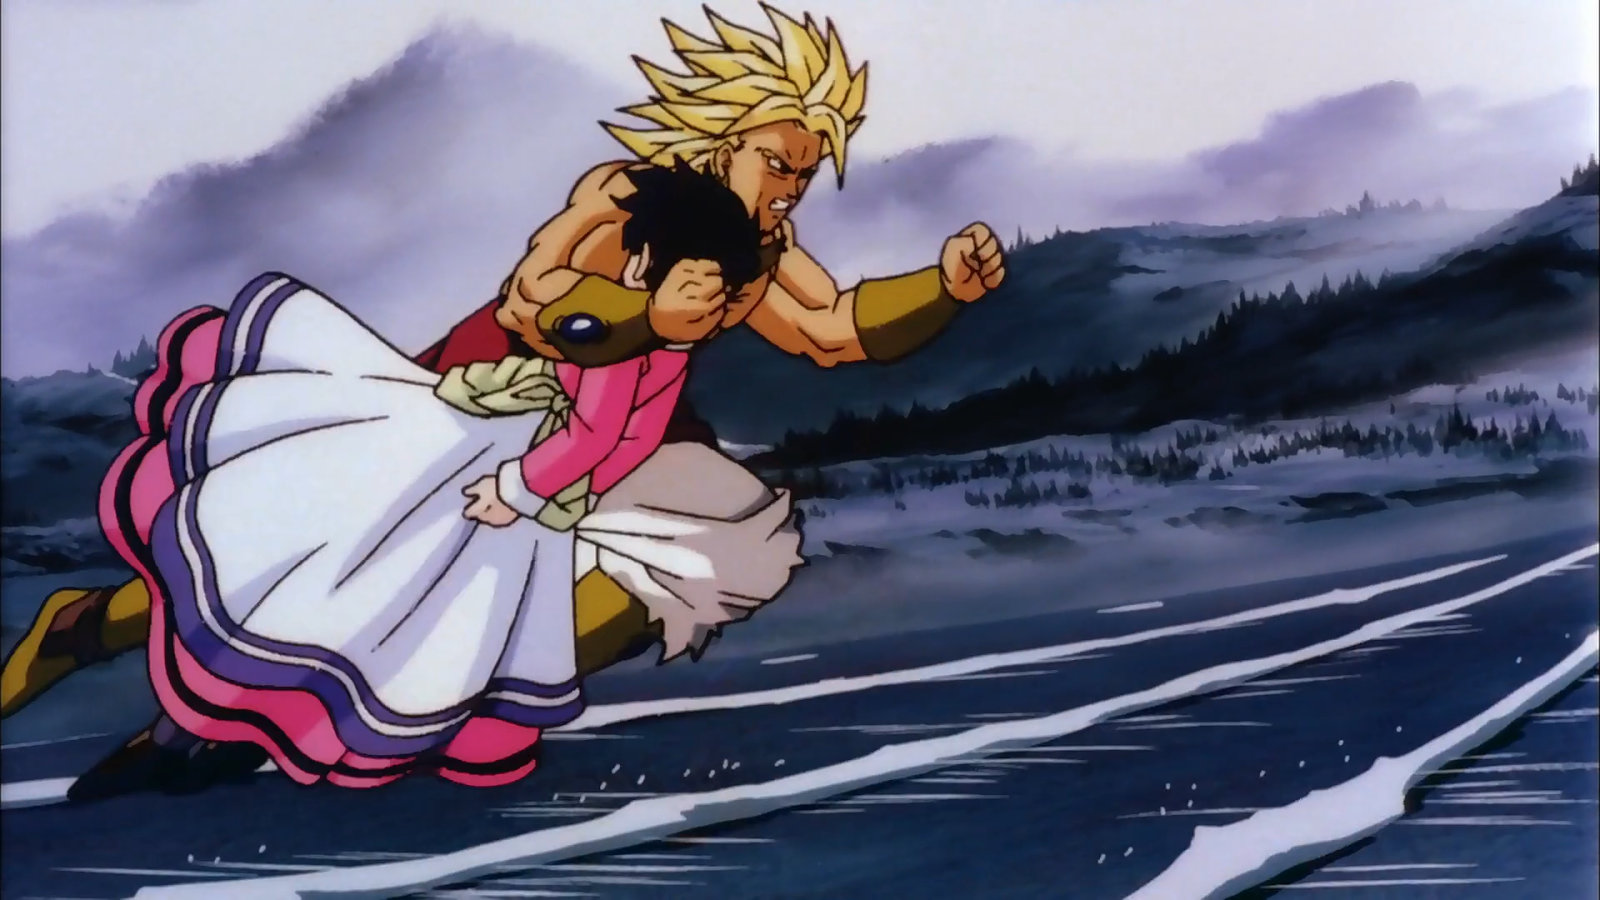 Dragon ball z film vf broly i married a strange person watch online free - Dragon ball z broly le super guerrier vf ...